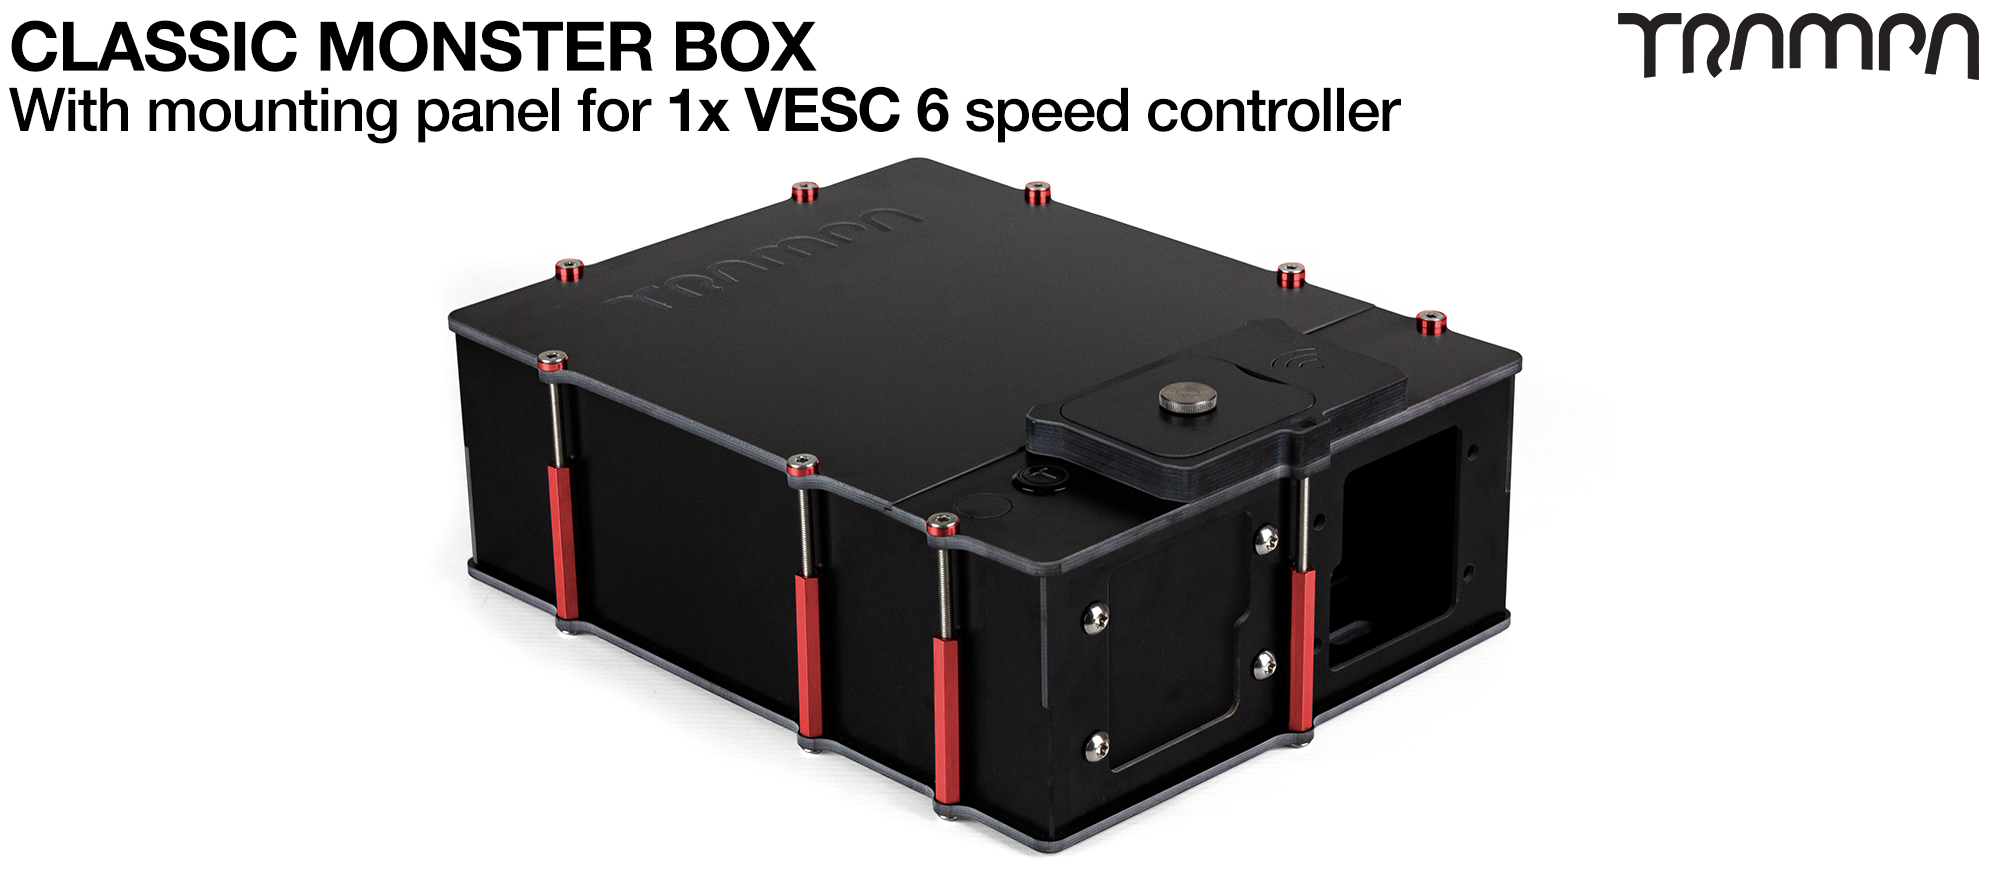 Classic MONSTER Box MkIV fits 84x 18650 cells to give 12s7p 21A or 2x22000 mAh Lipos & has Panels to fit 1x VESC 6 Internally. Made specifically to work in conjunction with TRAMPA's 1WD Electric MTB Decks, also works on any thing it can be adapted too